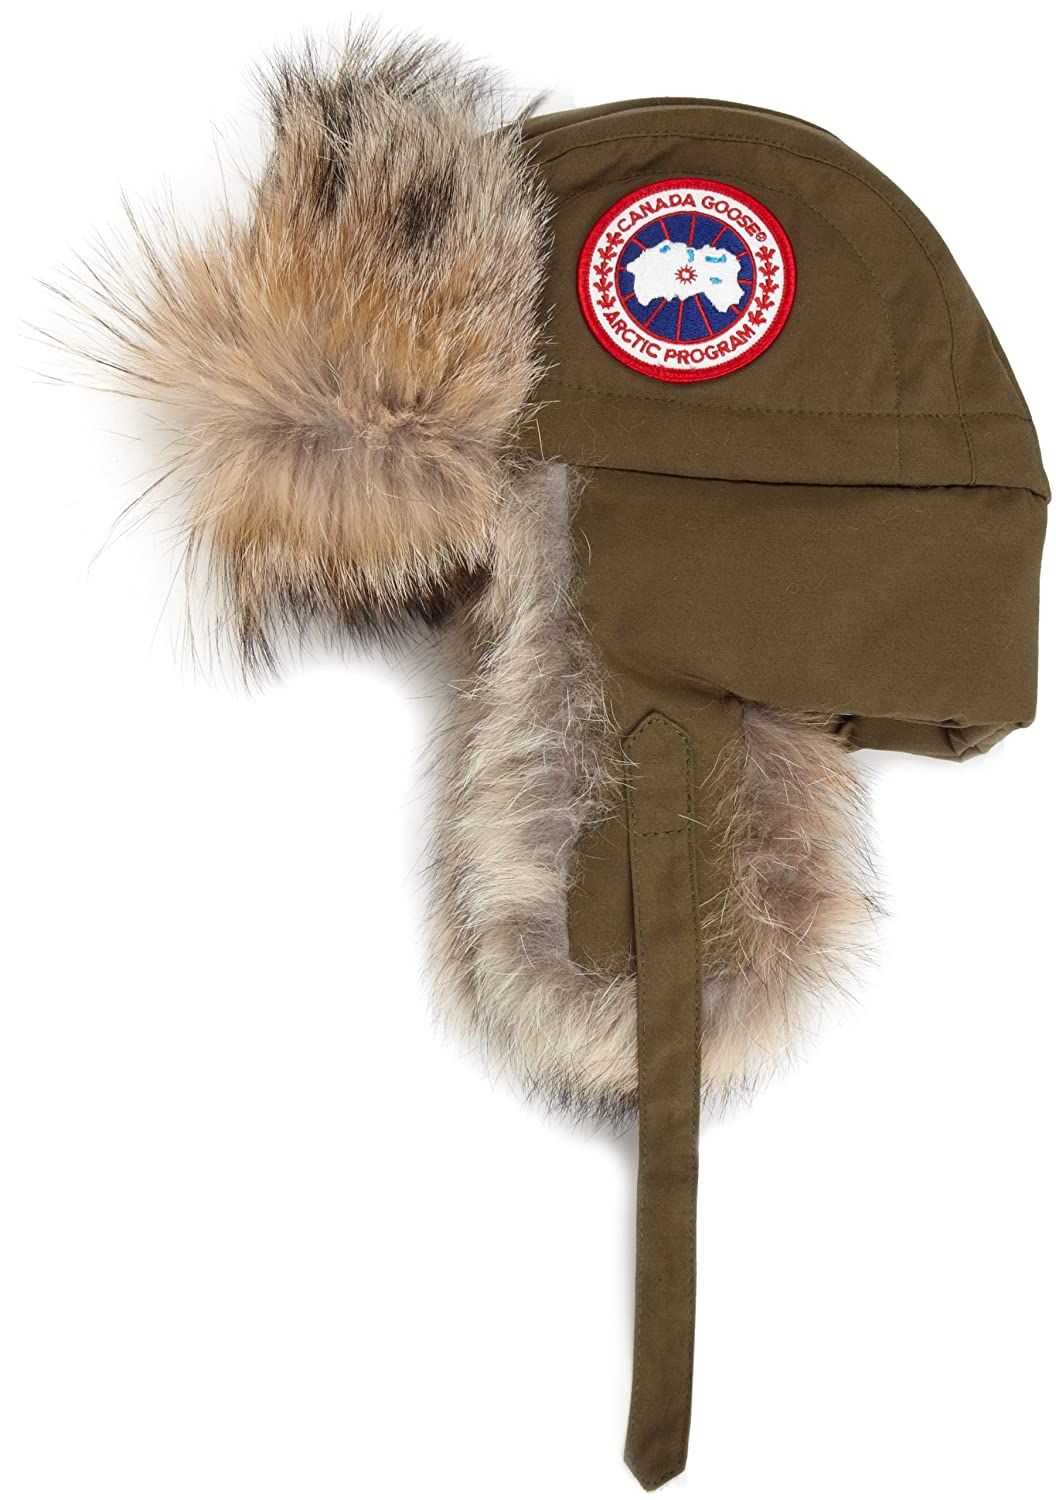 9cfa8e784 Canada Goose Men's Aviator Hat